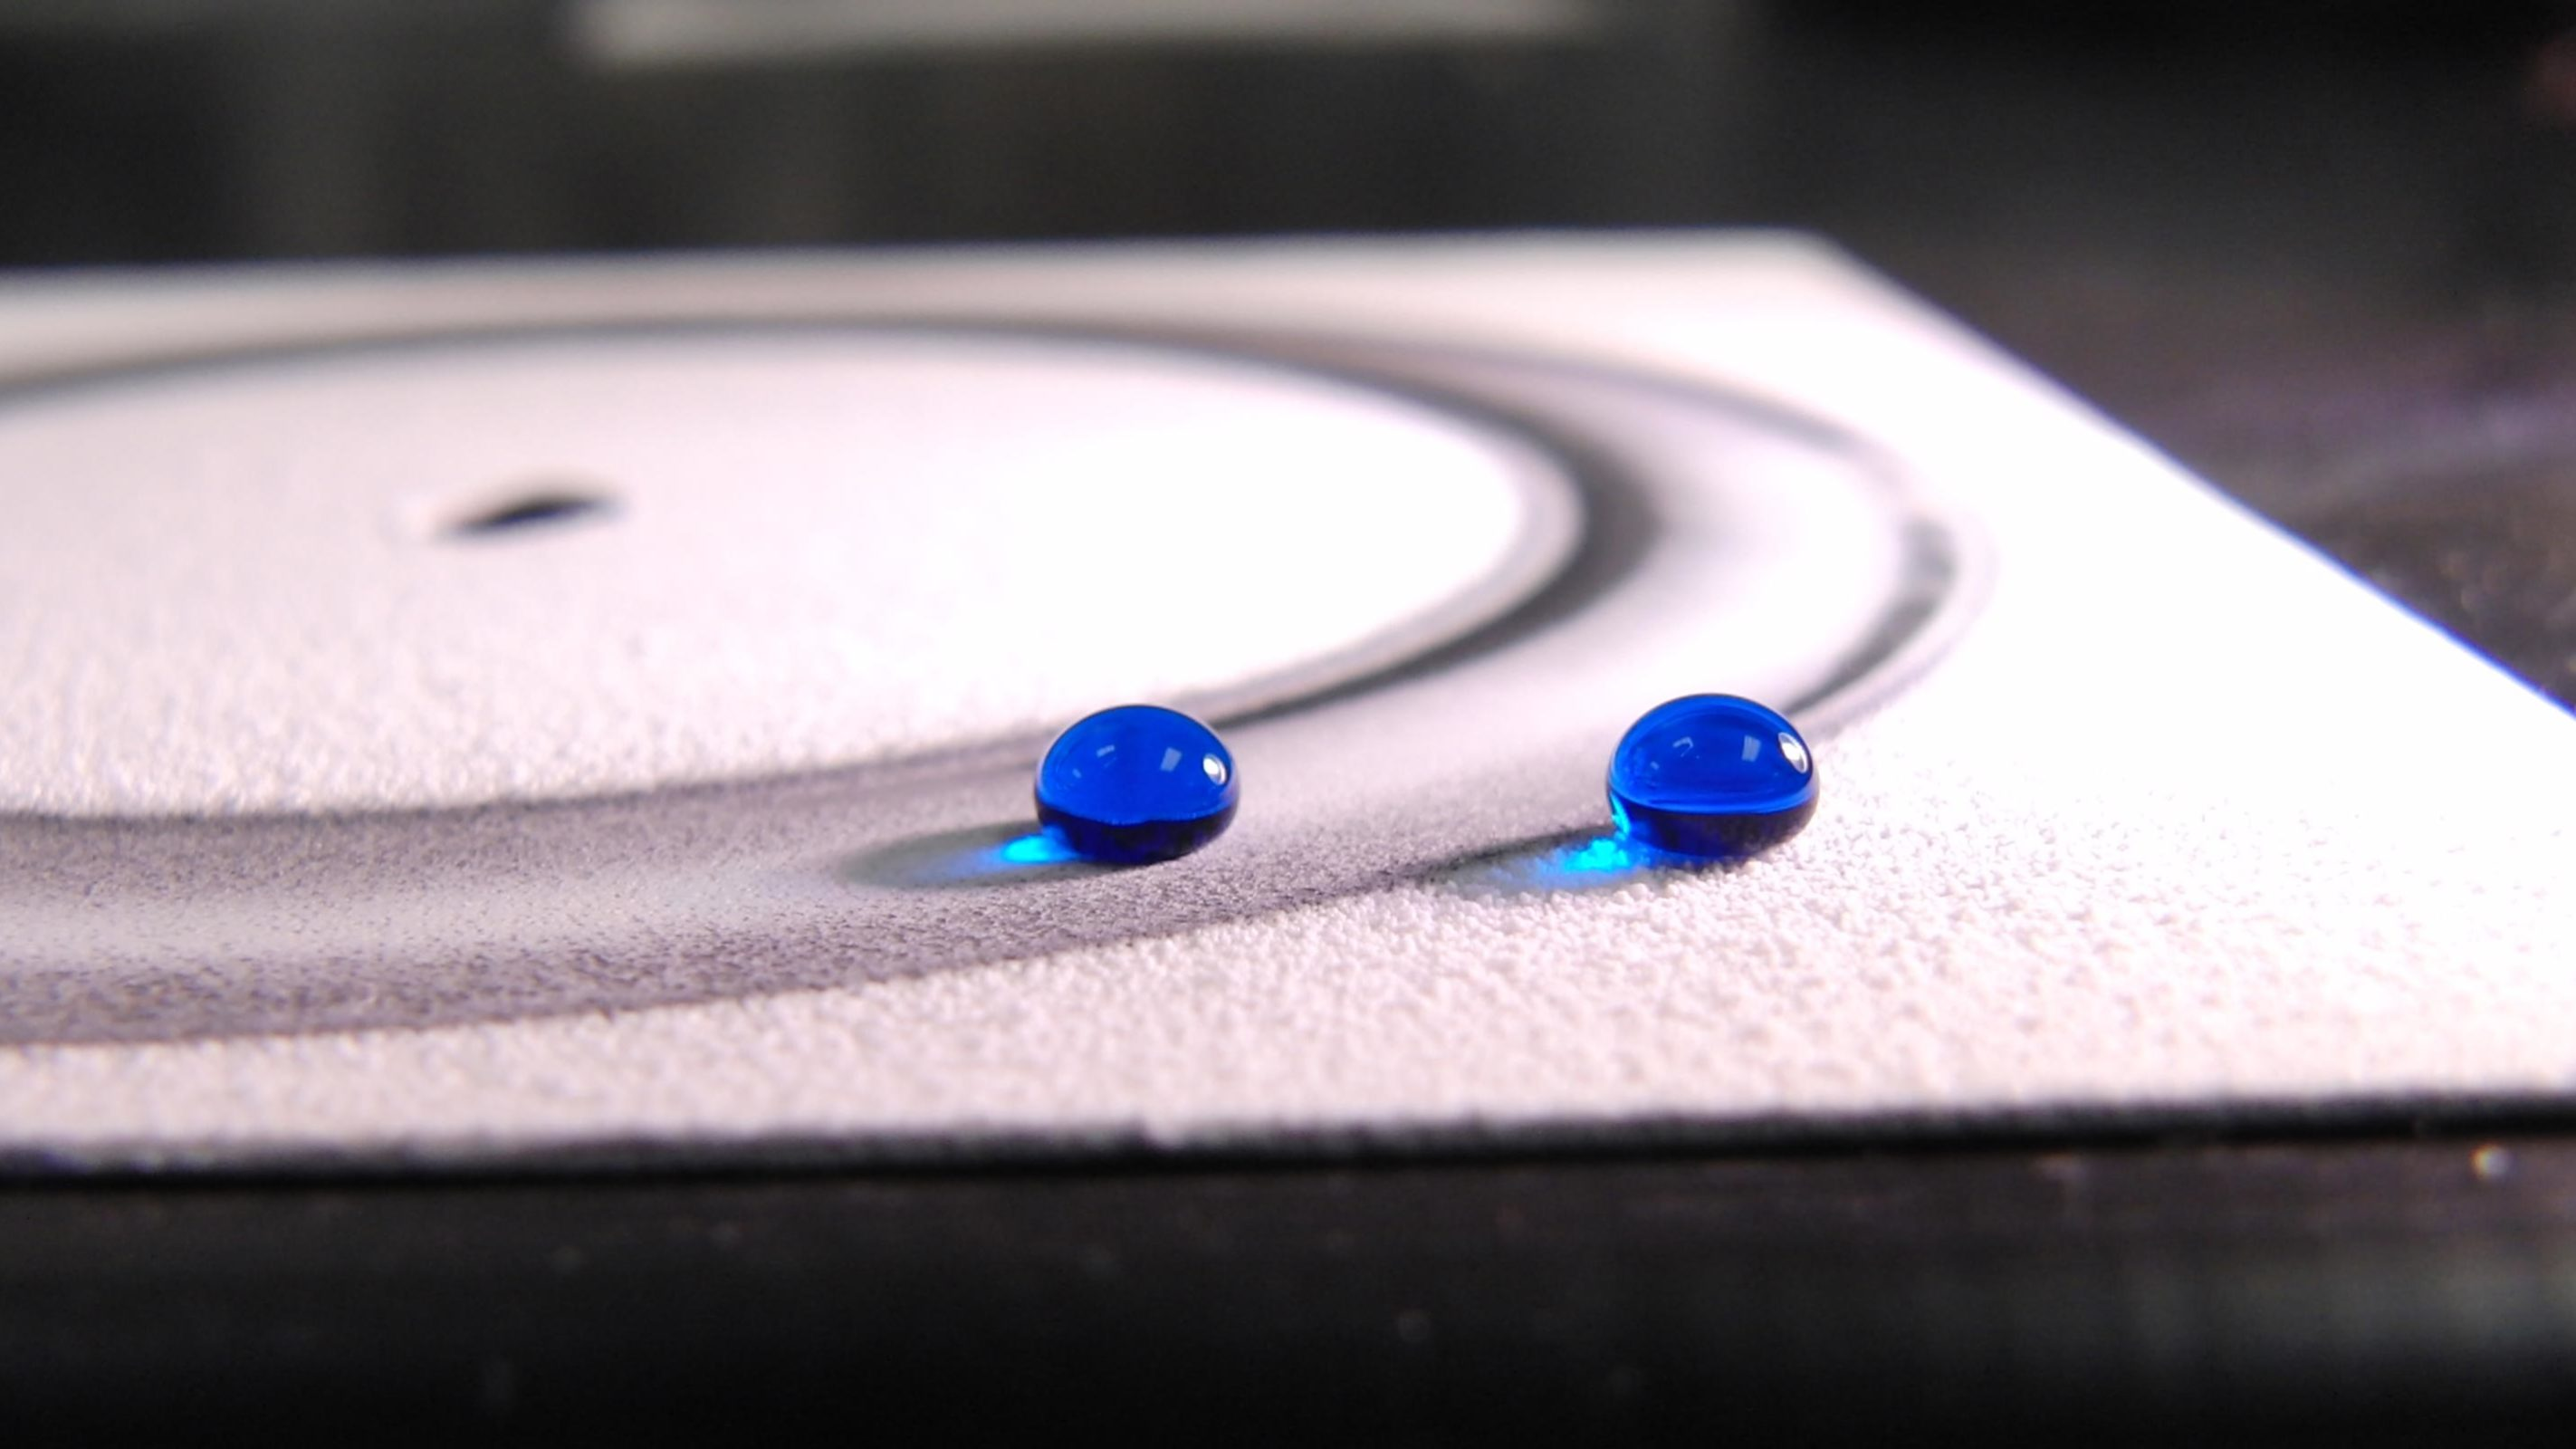 Two droplets of water repelled by an ultra-durable water-repellent coating. The droplet on the left is sitting on a surface that has been abraded by a machine.